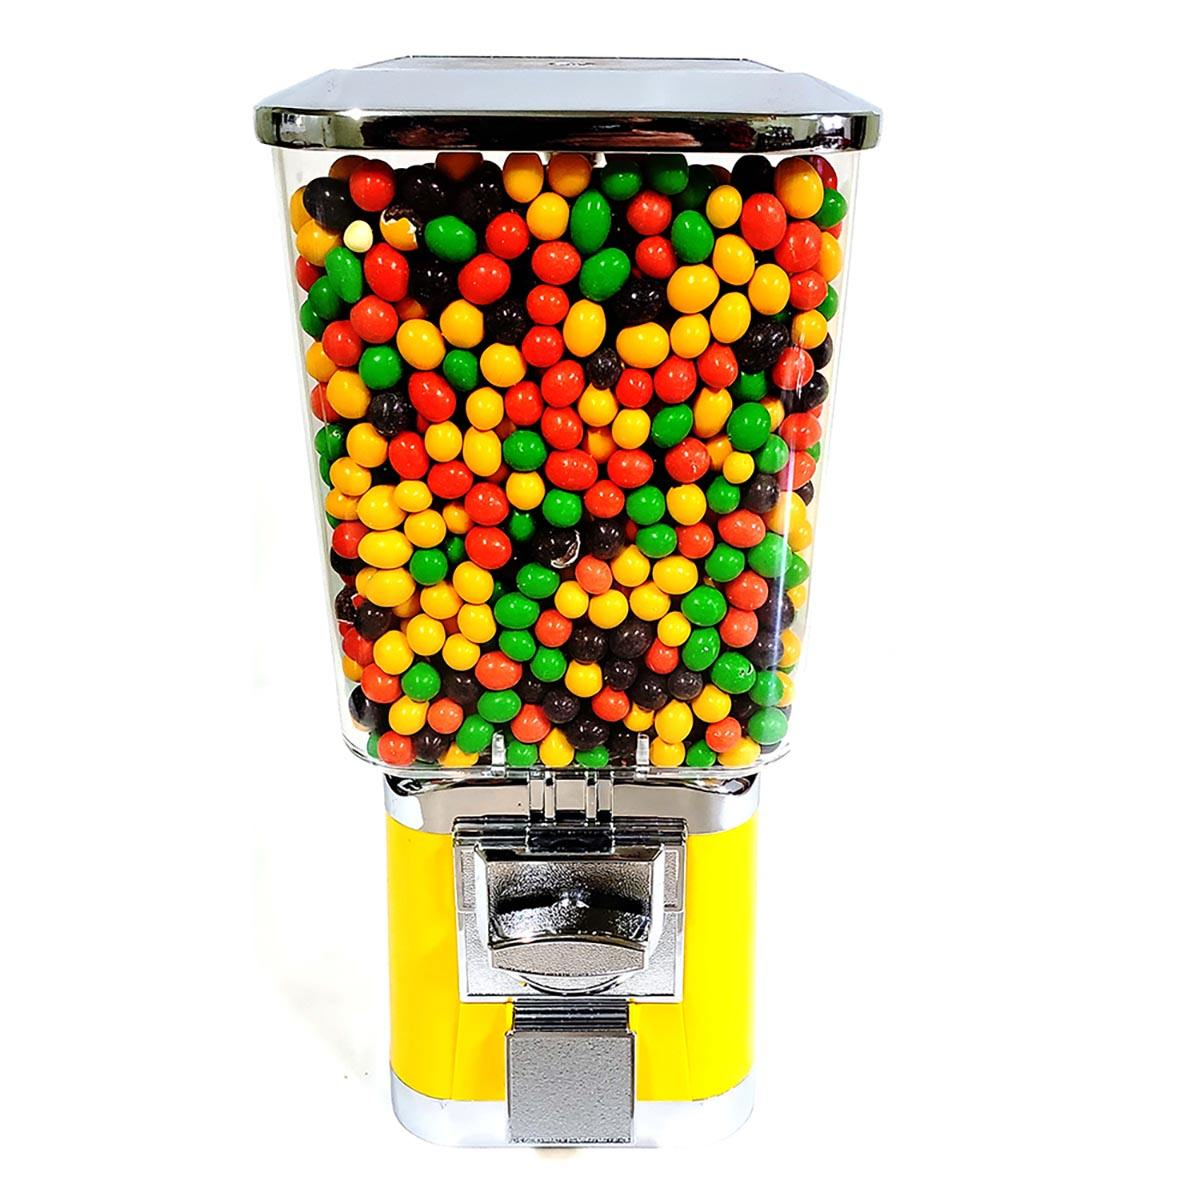 Jstory Vending's Candy Vending Machine Chrome Yellow